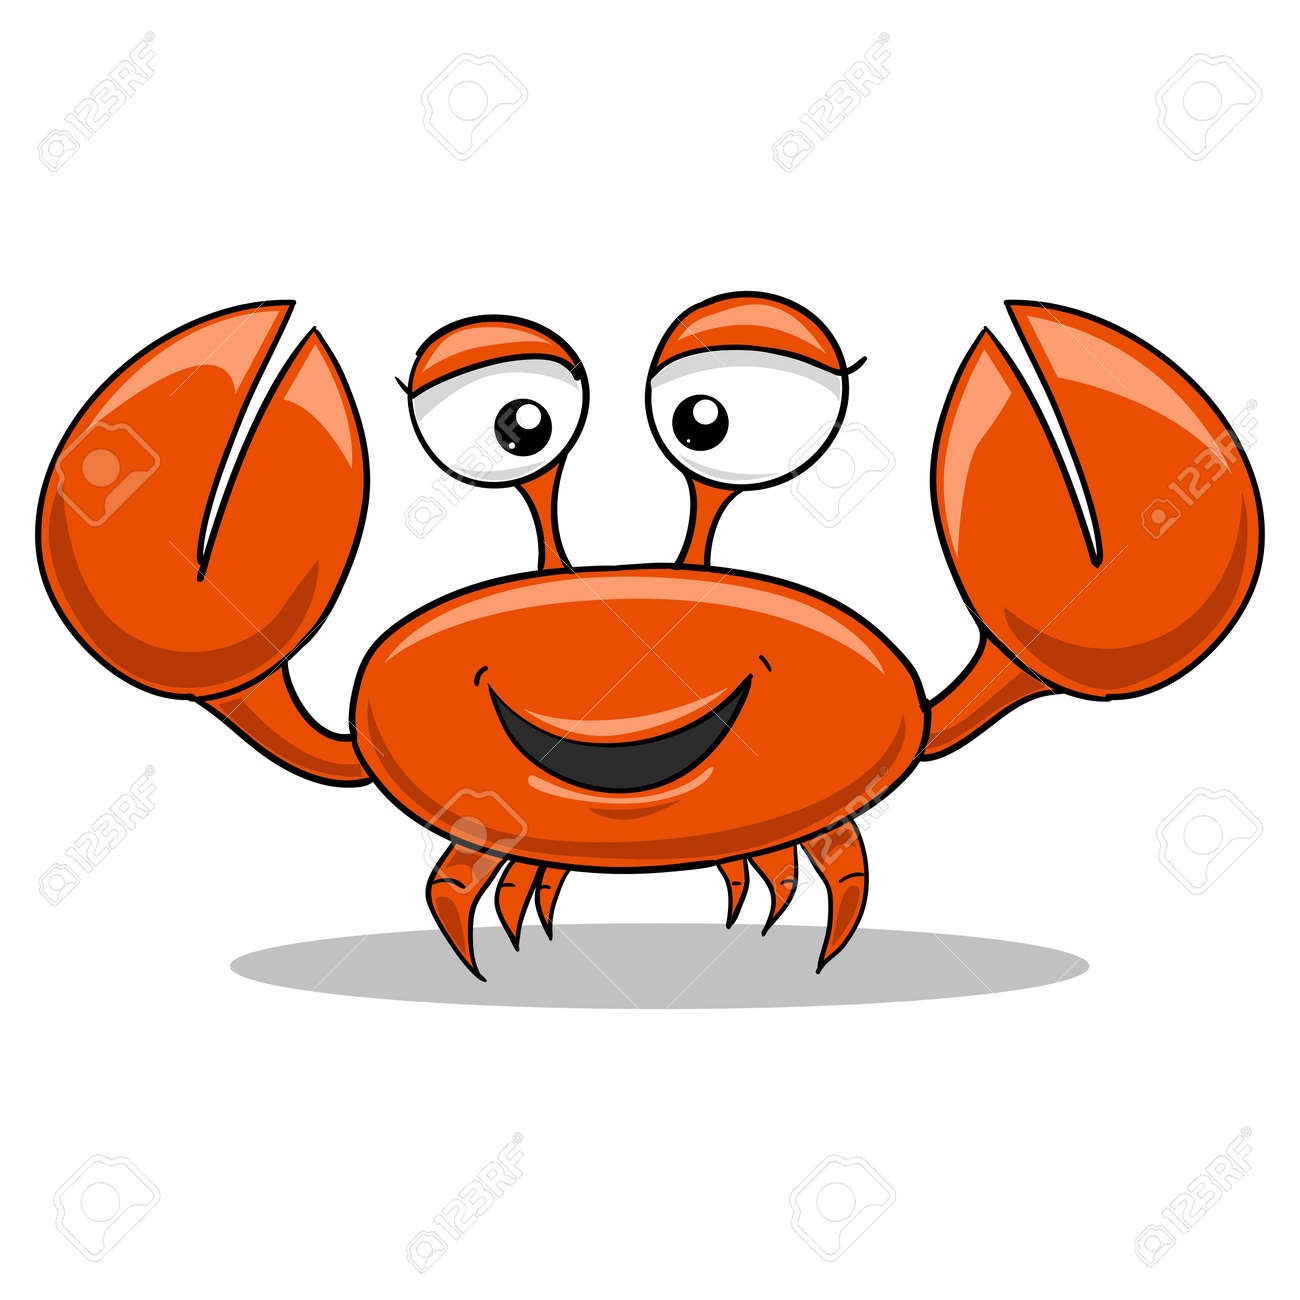 color red funny cartoon crab vector illustration royalty free rh 123rf com crab vector art crab vector png